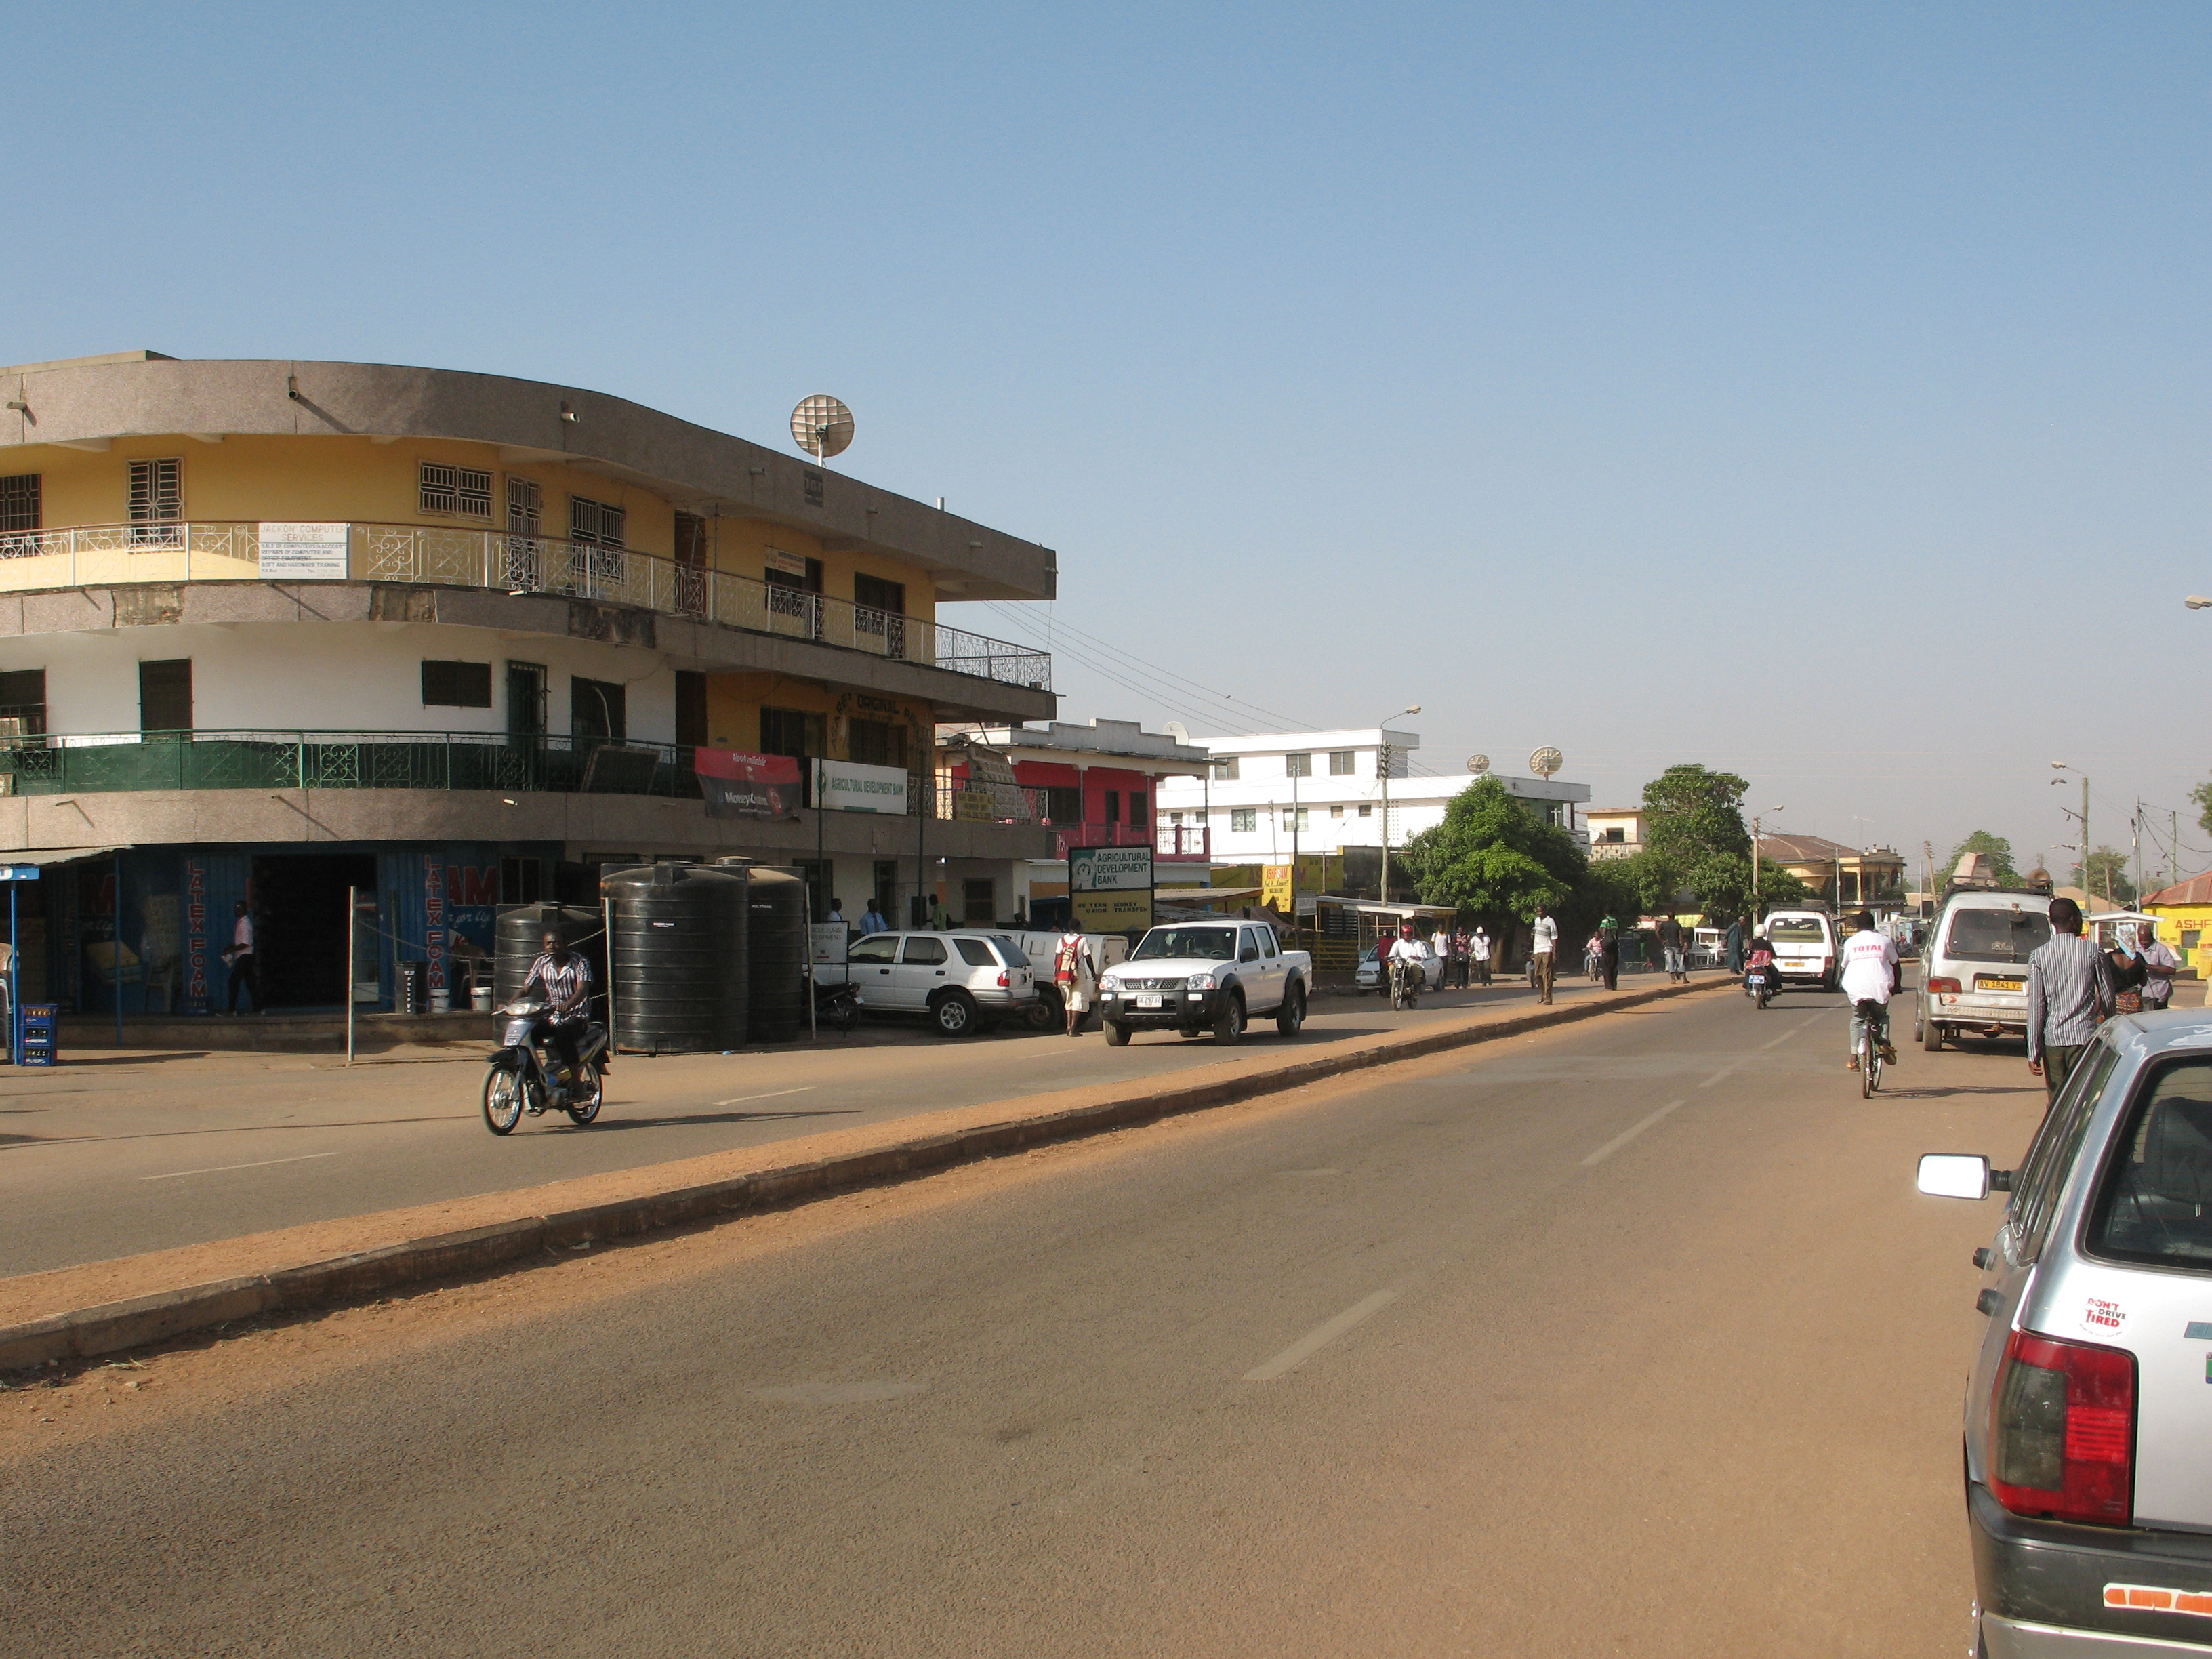 A nice view of Wa township, the capital of Upper West region.